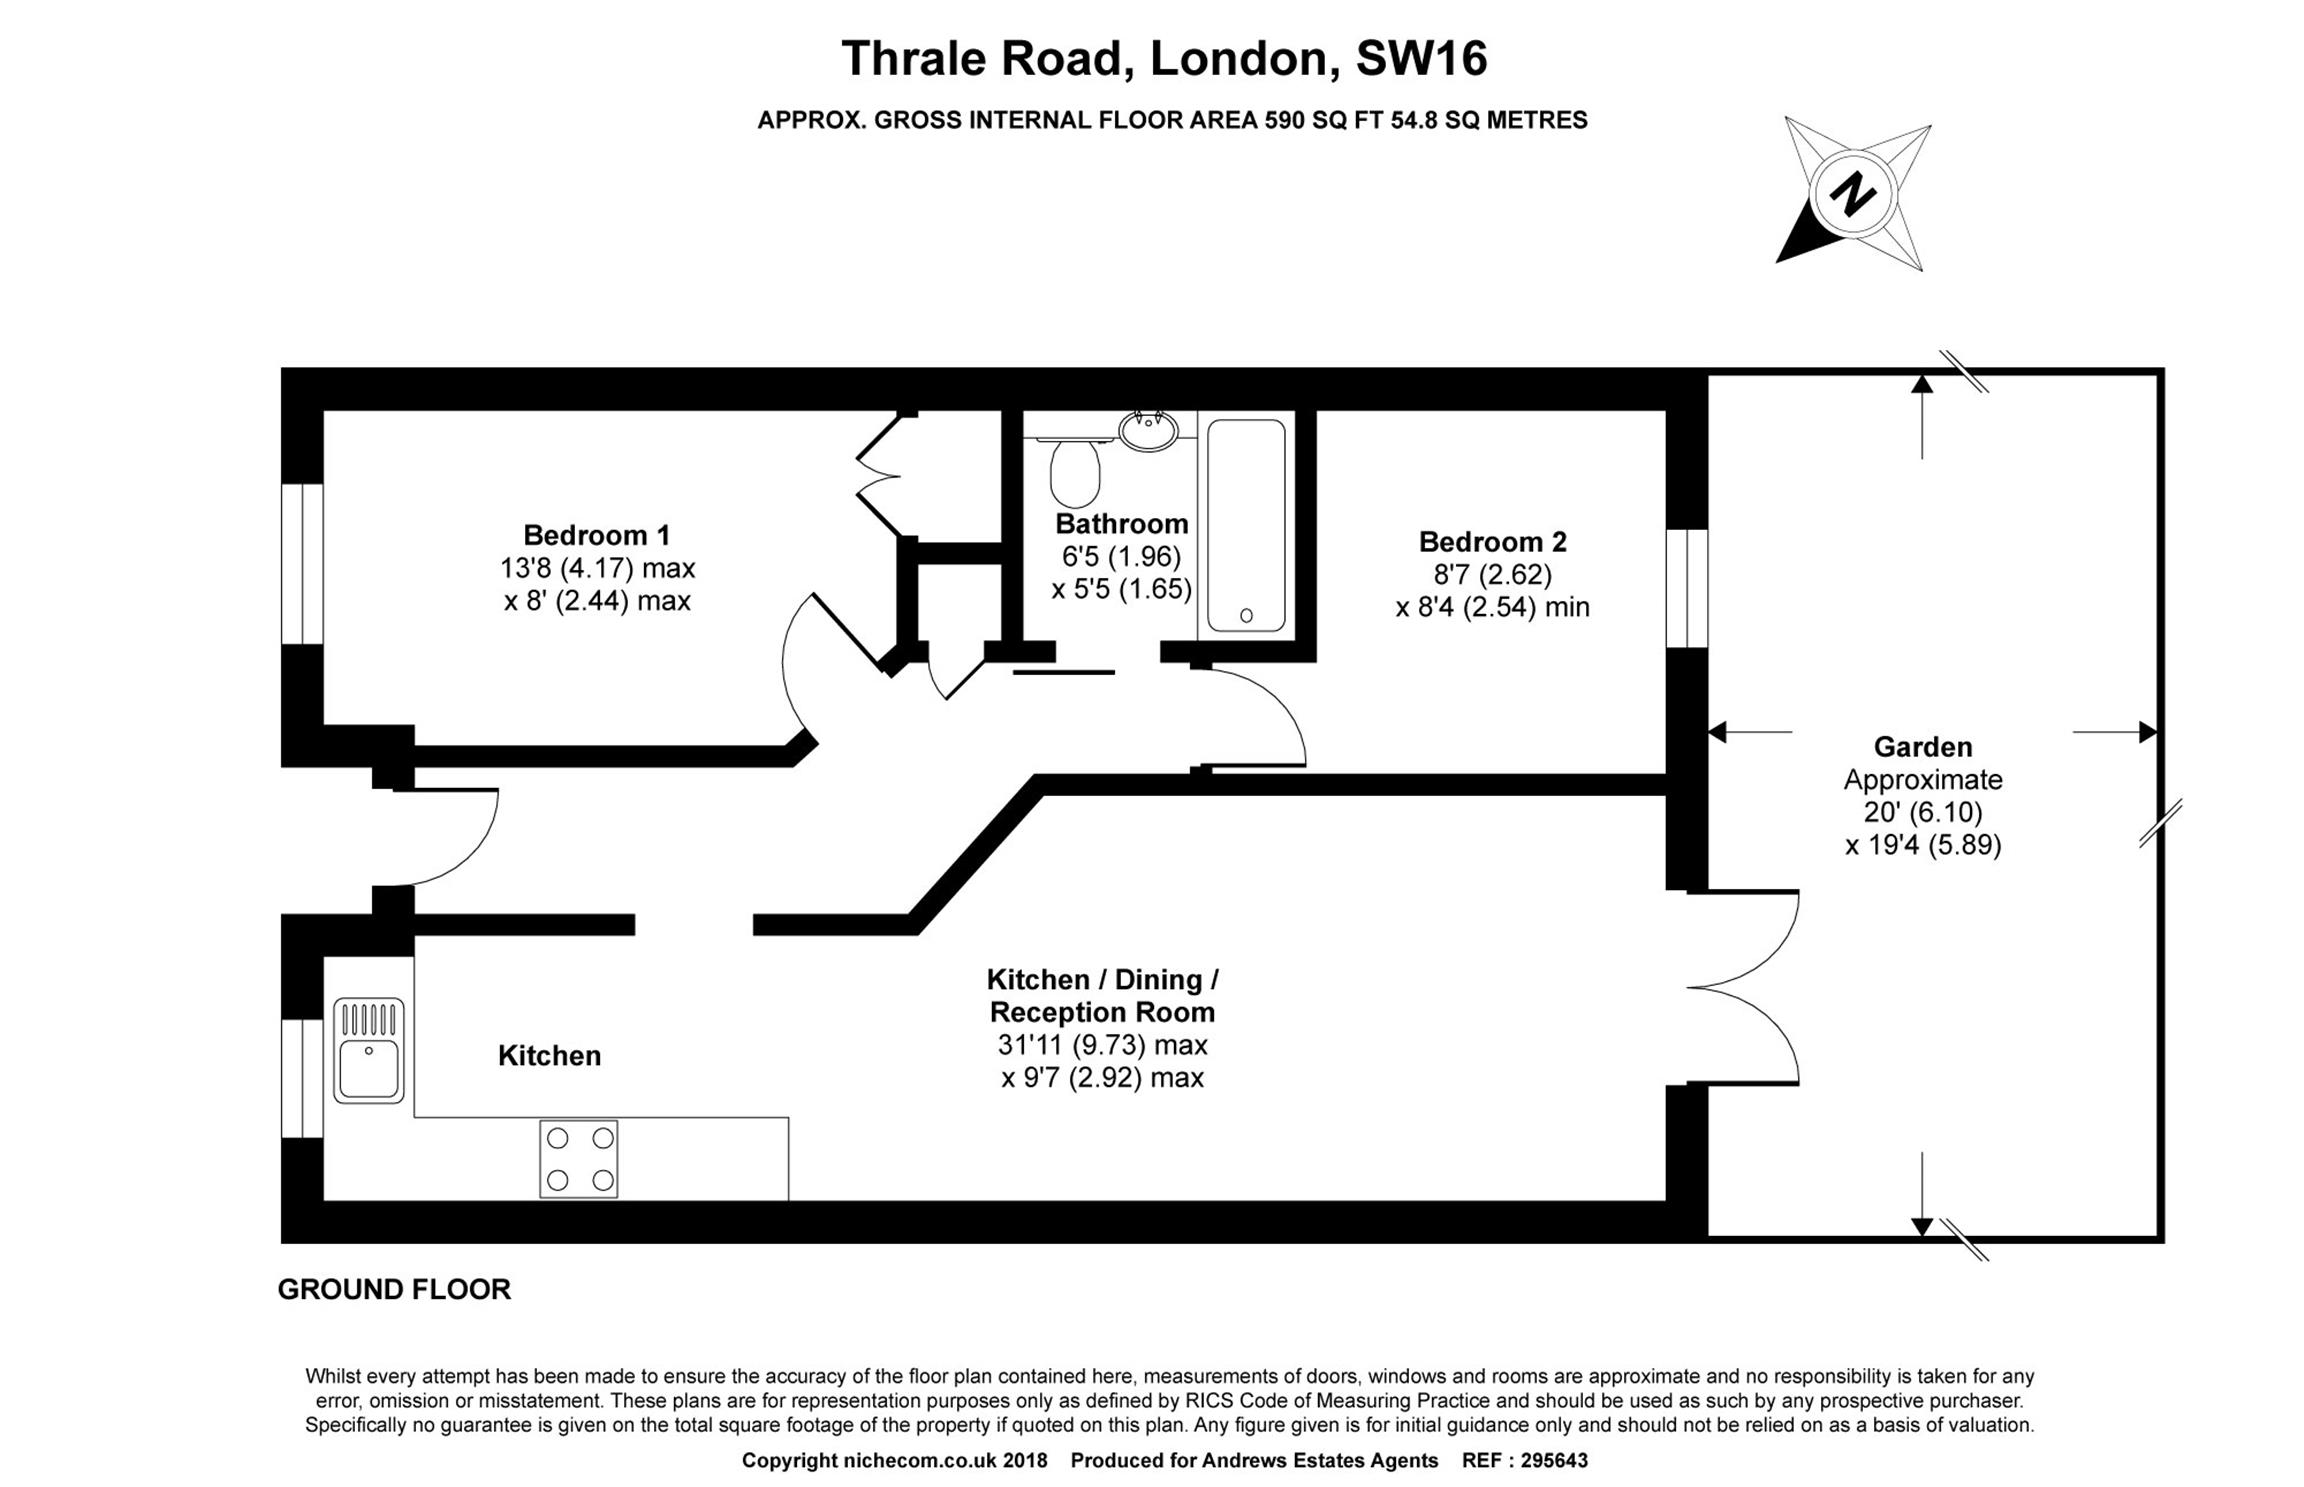 2 Bedrooms Semi-detached bungalow for sale in Thrale Road, London SW16